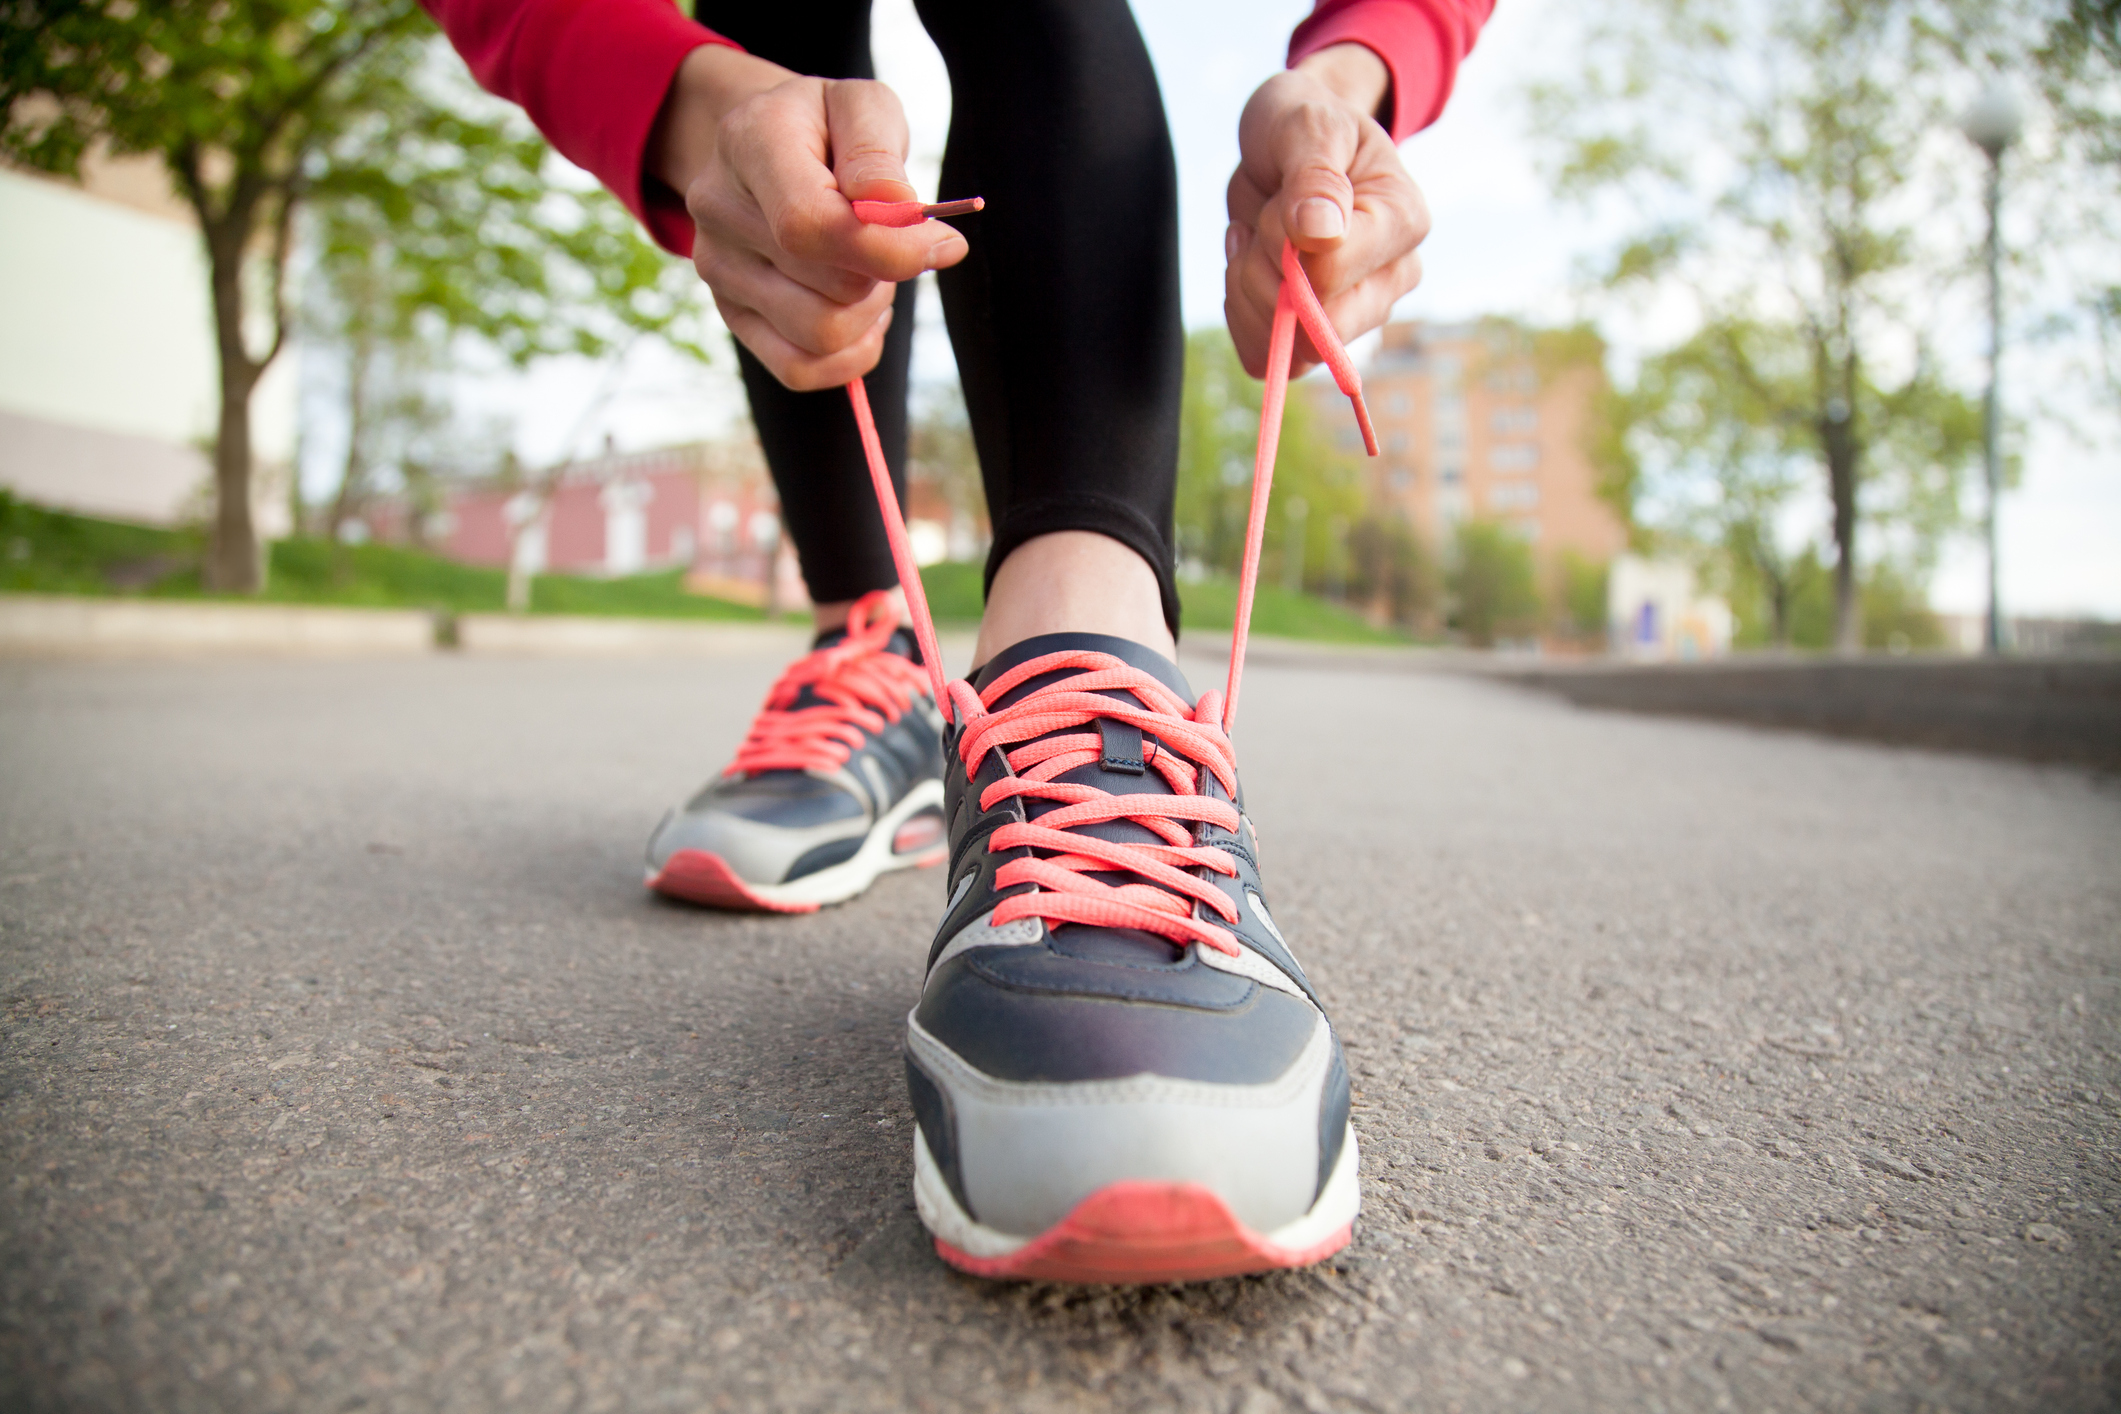 Exercise Safety Tips for People with Diabetes